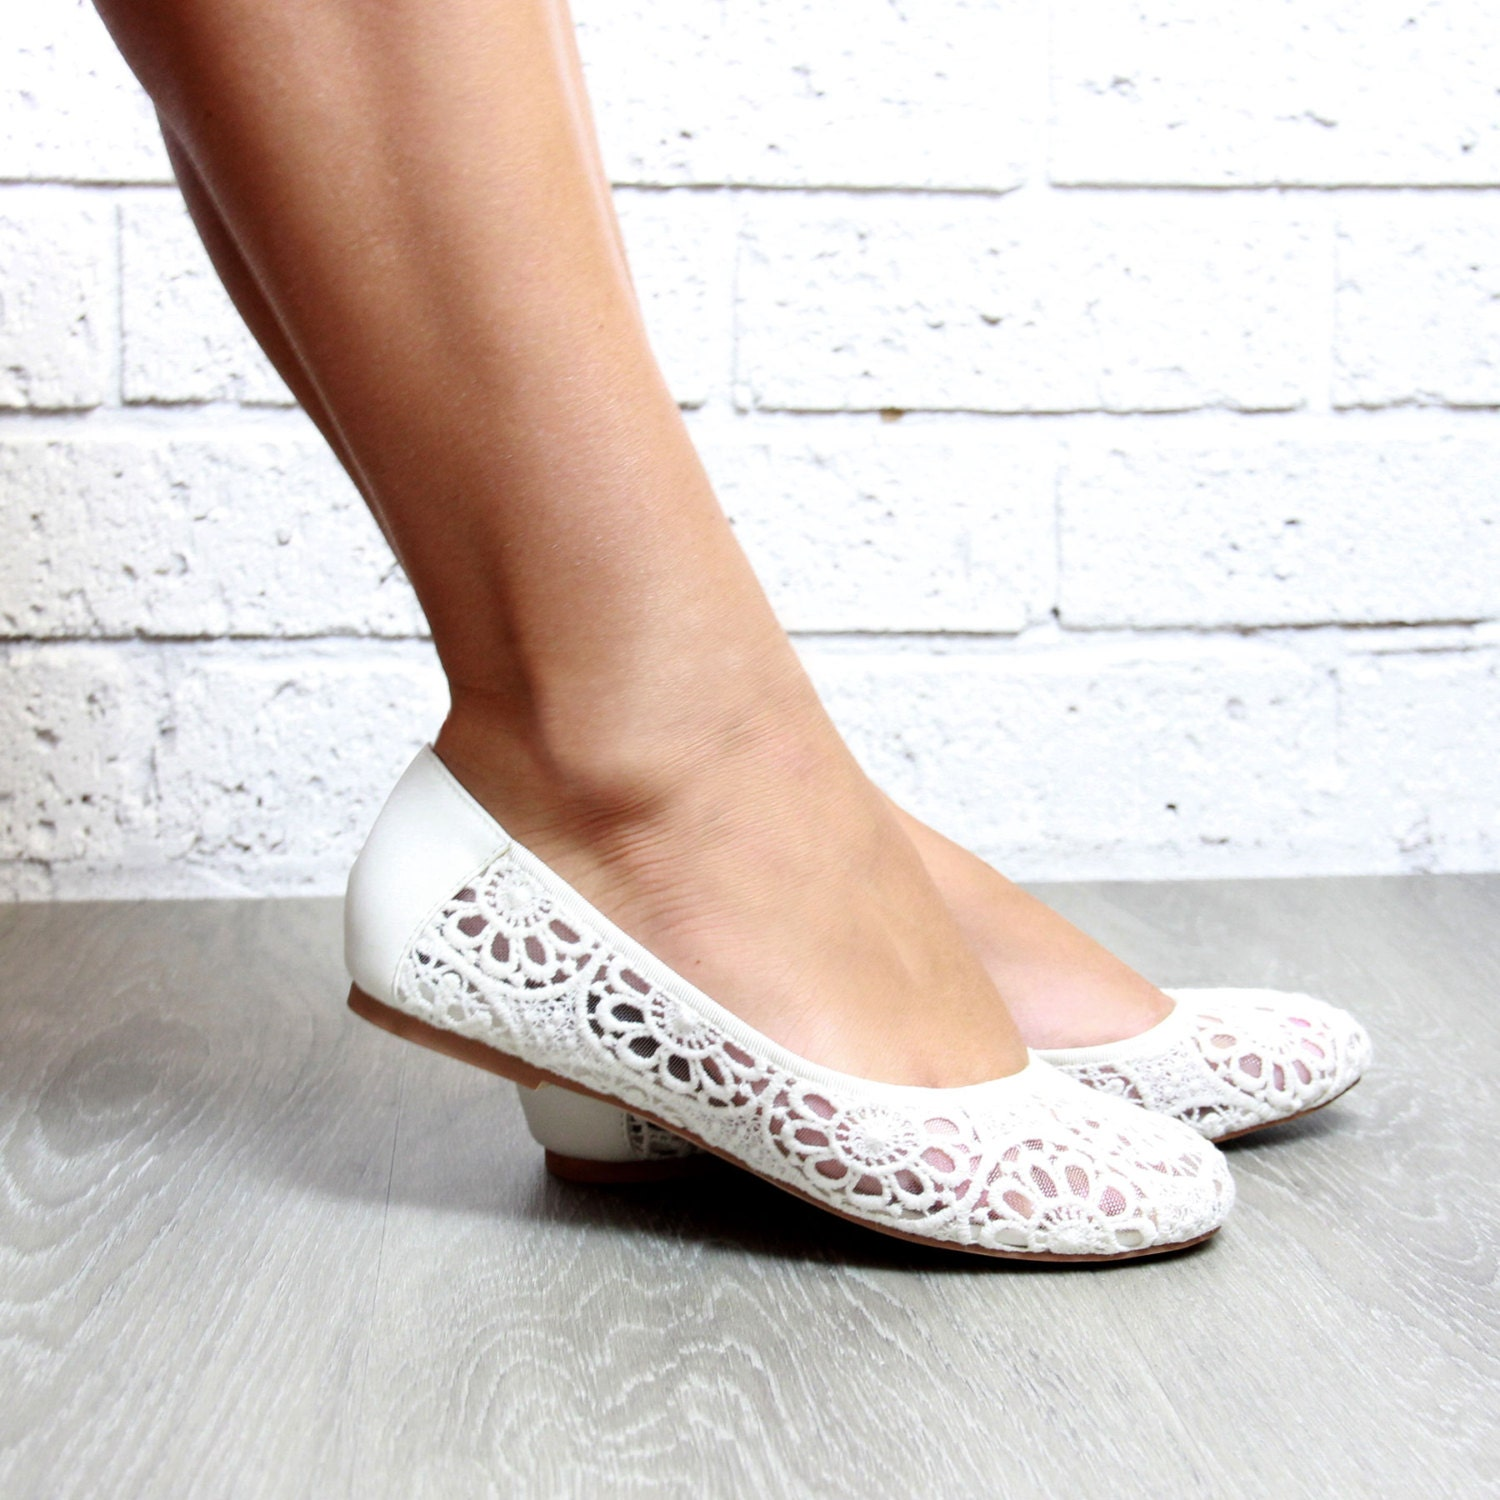 Girls WHITE LACE Ballet Flats with satin bow - For Flower Girls, Baptism and Christening Shoes kaileep. 5 out of 5 stars See similar items + More like this. Women Wedding Lace Shoes, Bridesmaid Shoes - WHITE LACE Pointy Toe ballet flats with scattered rhinestones - Bridal shoes kaileep. 5 out of 5 stars (2,) $ Favorite.